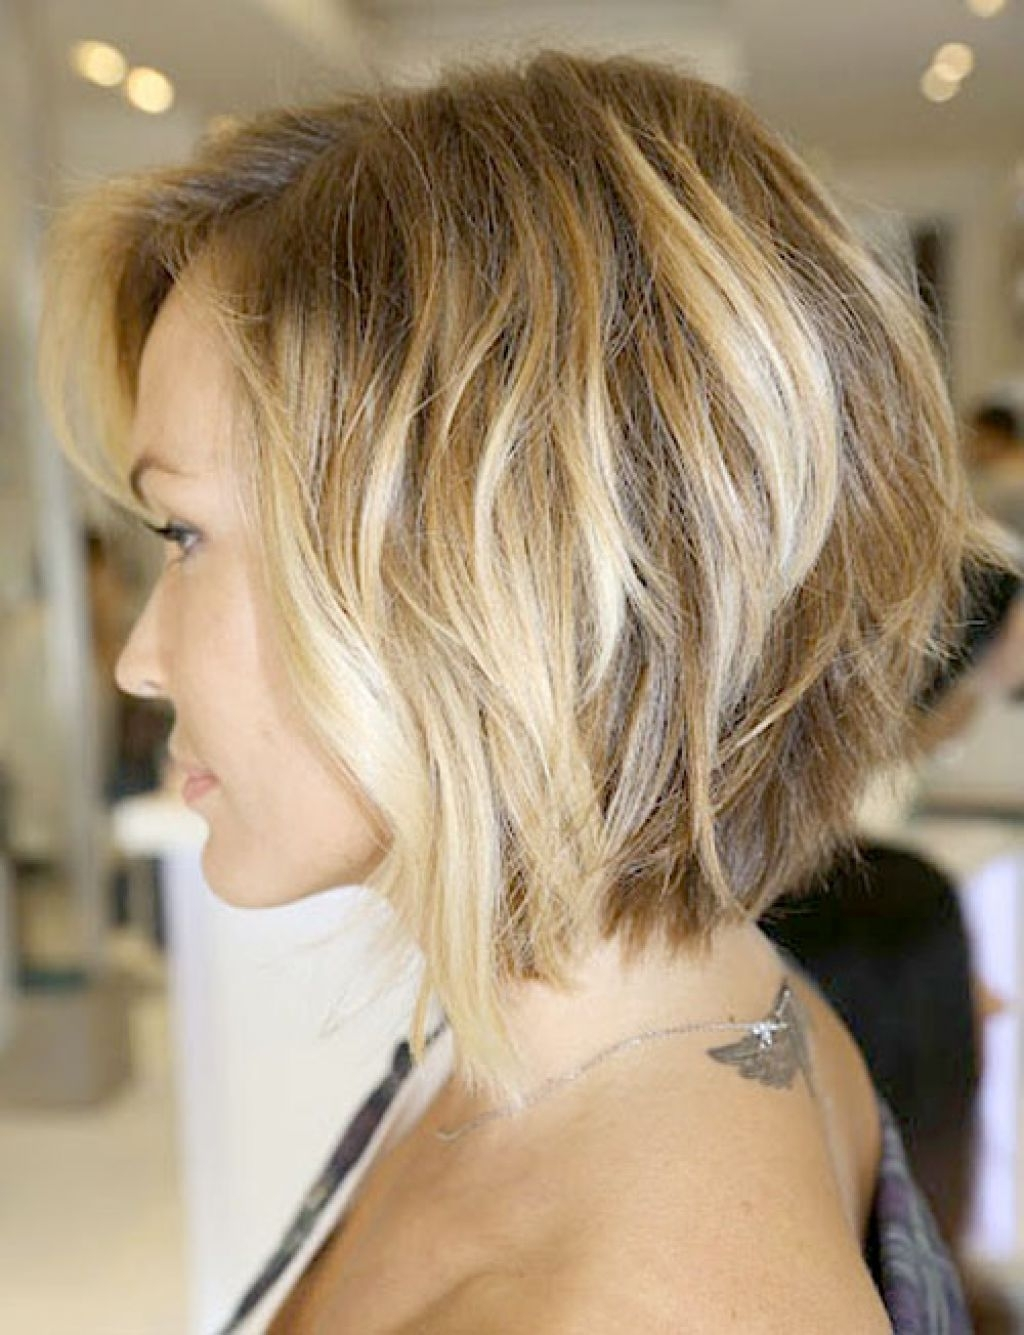 Short Inverted Bob Hairstyles For Wavy Hair – Popular Long Within Fashionable Shaggy Bob Cut Hairstyles (View 13 of 15)